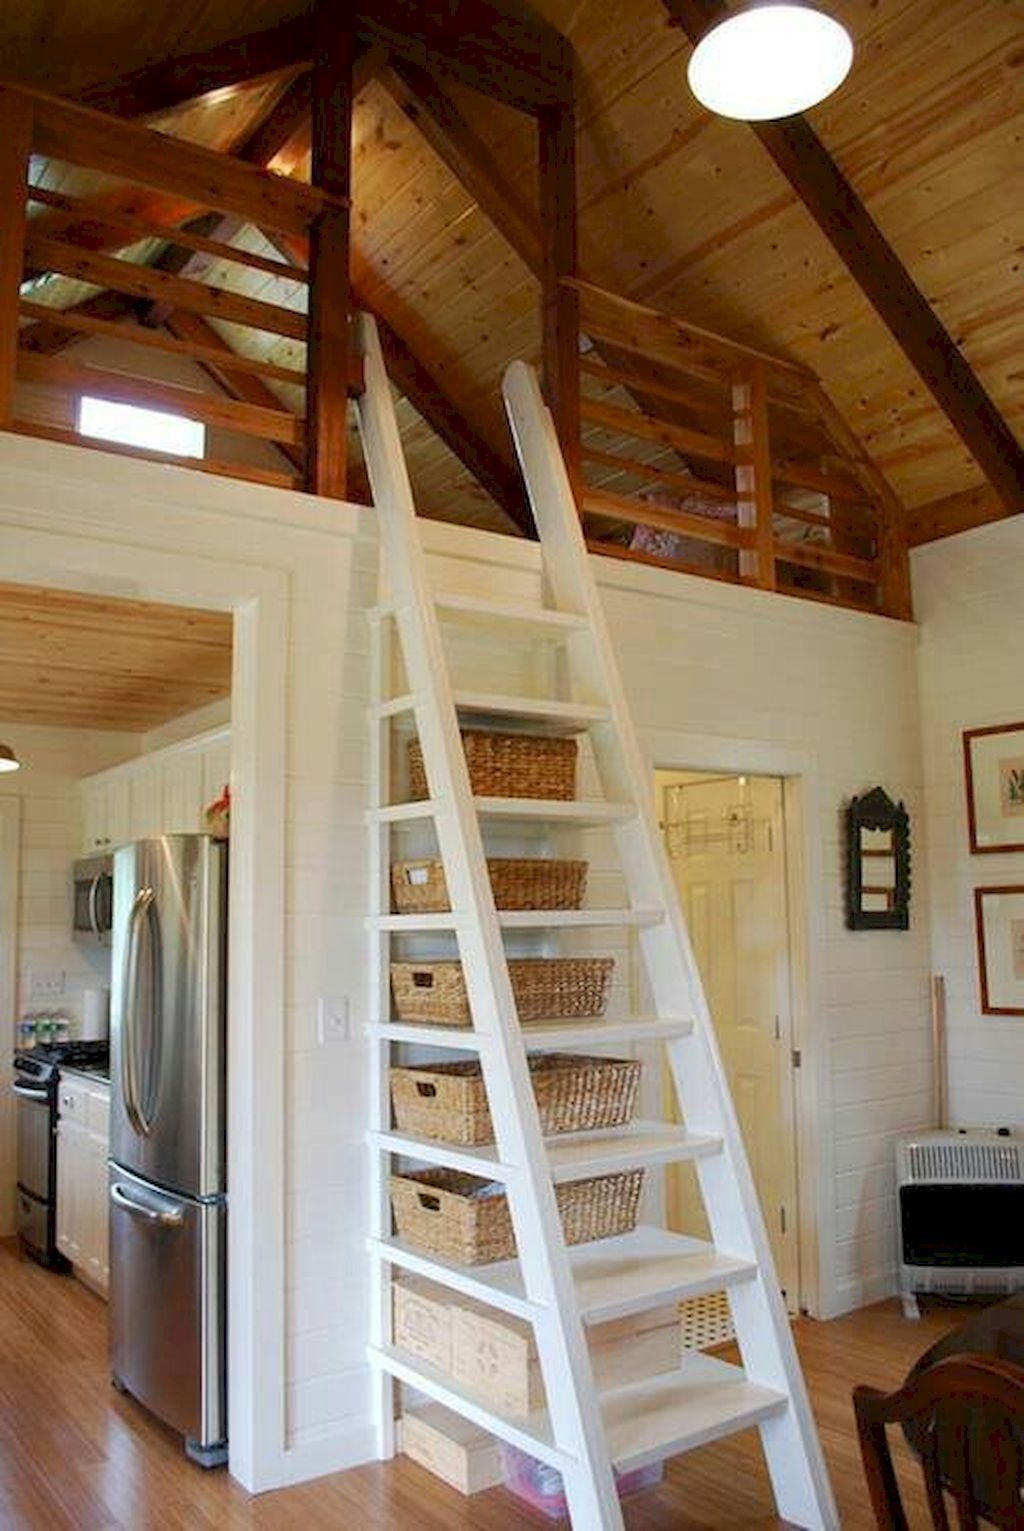 Incredible Loft Stair Design And Storage Organization Ideas 14 Tiny Cottage Tiny House Living Loft Stairs